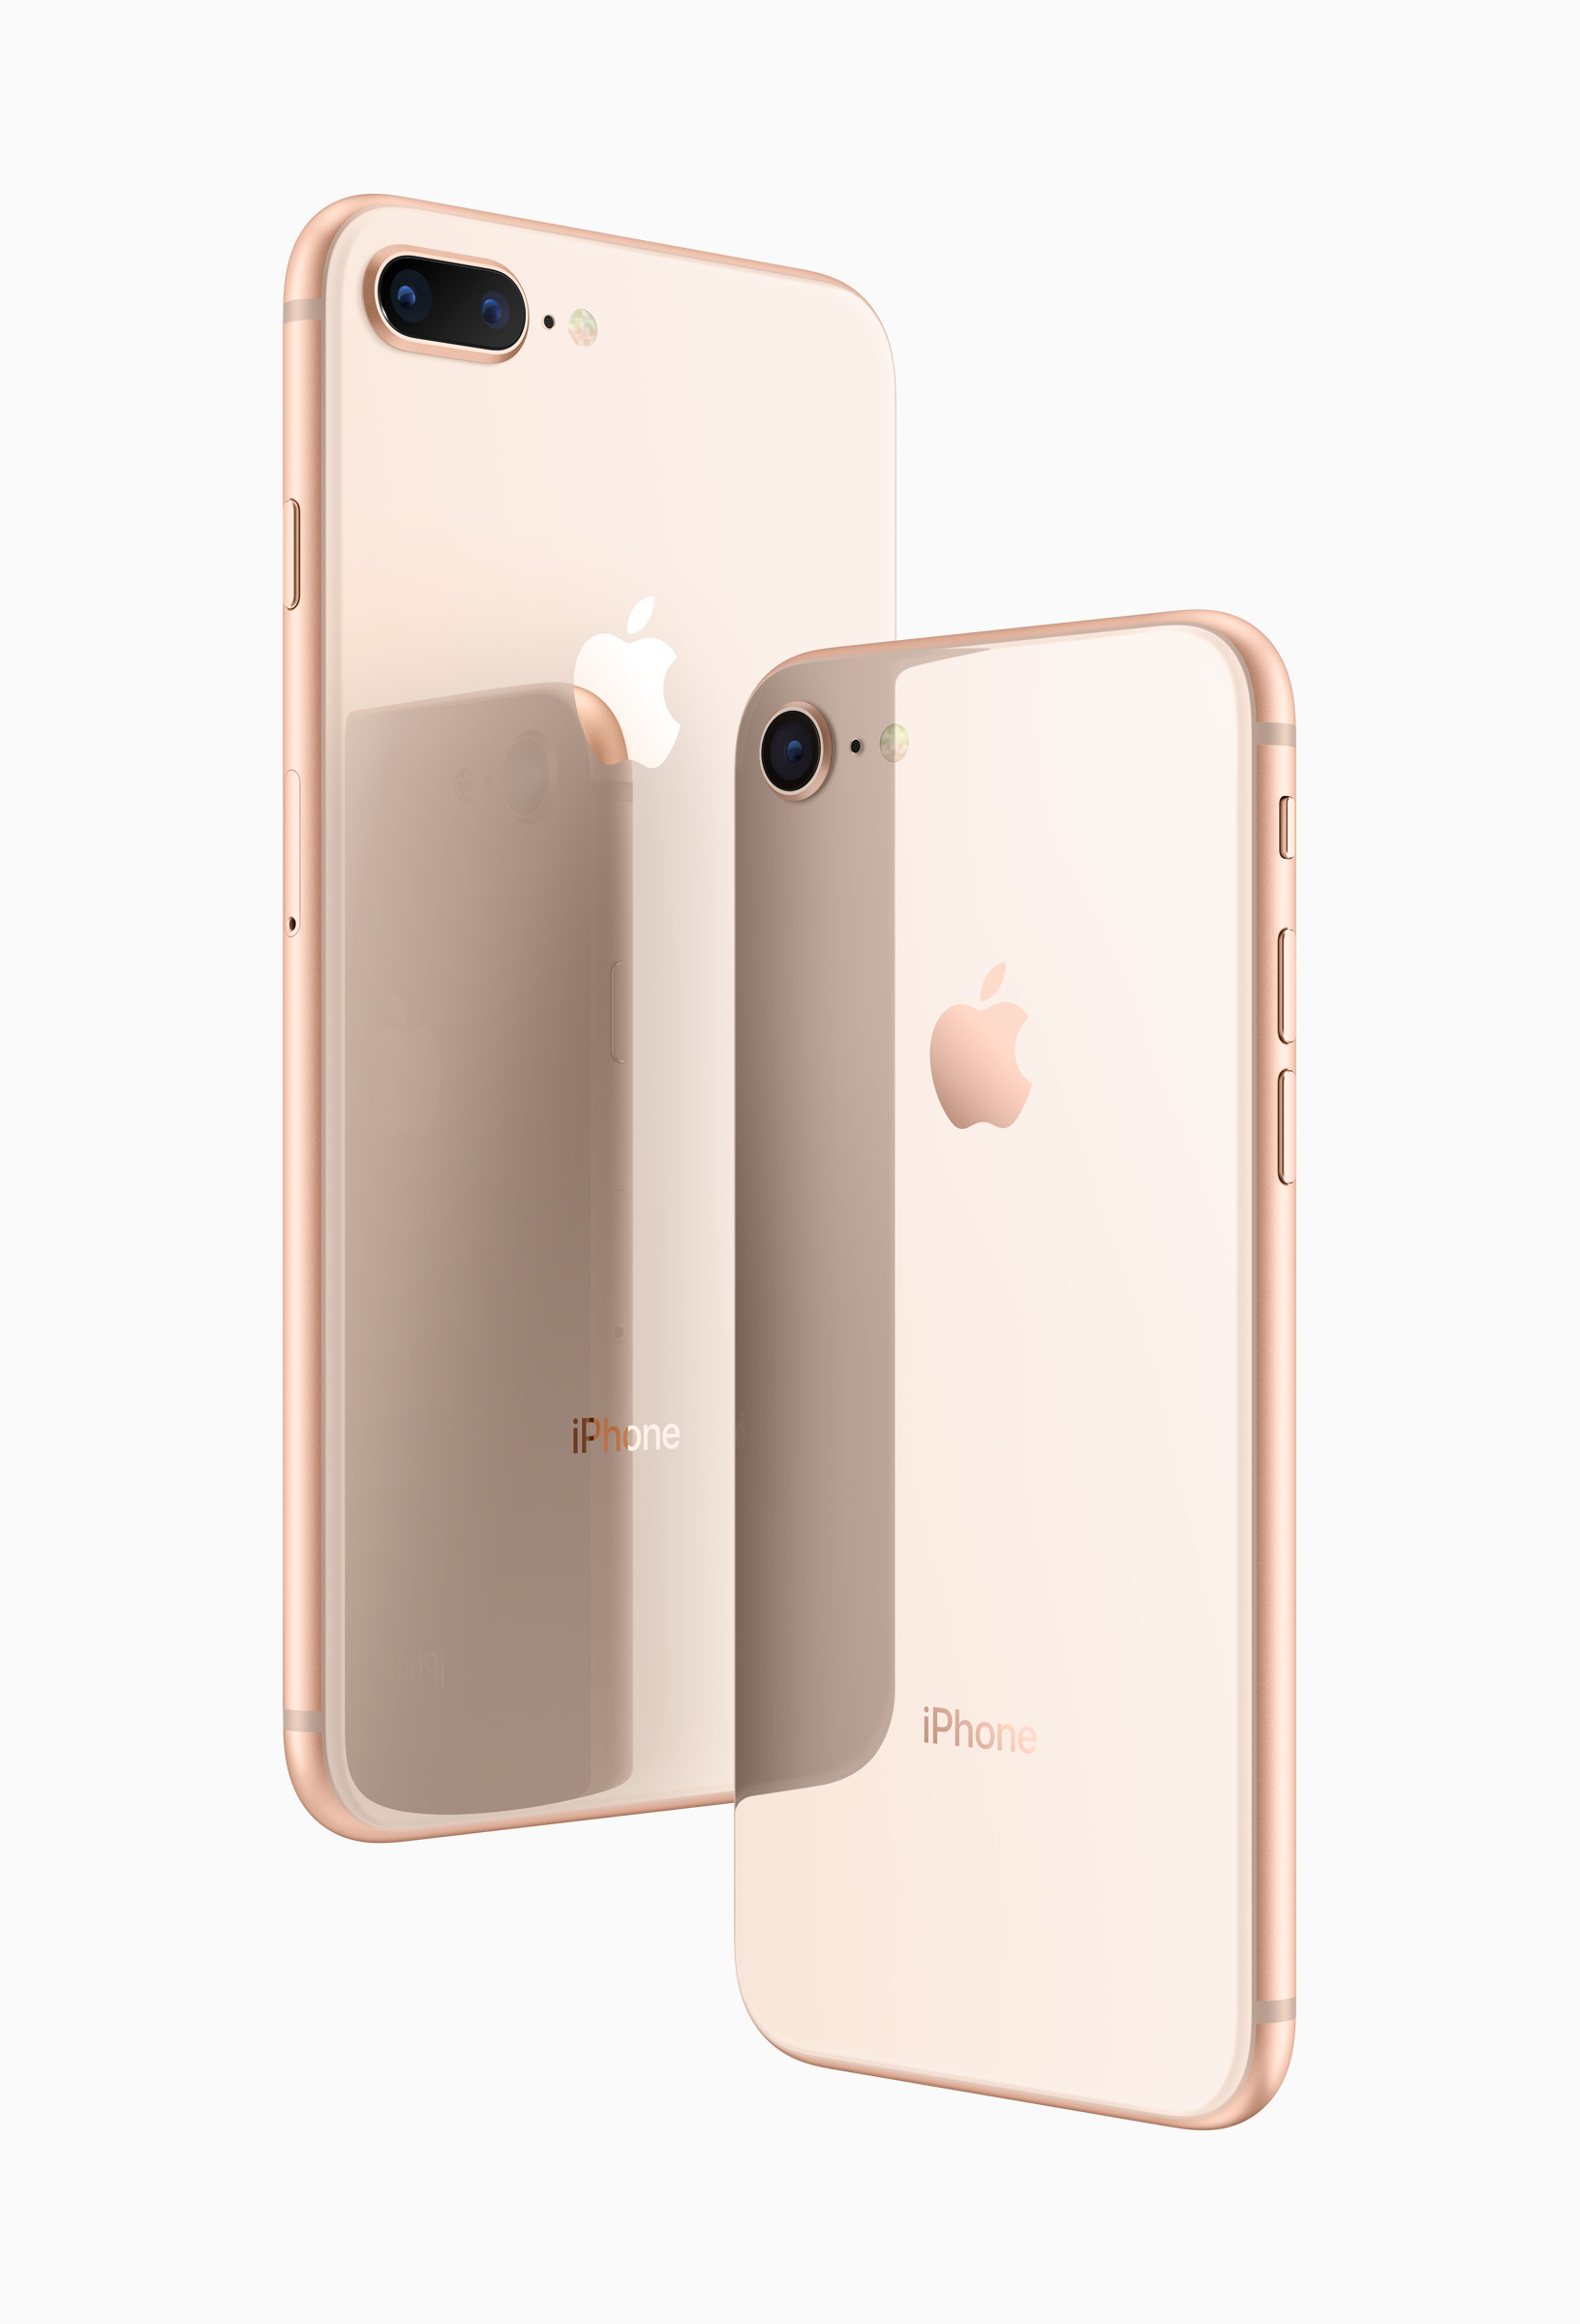 8plus_and_8_glass_back.jpg